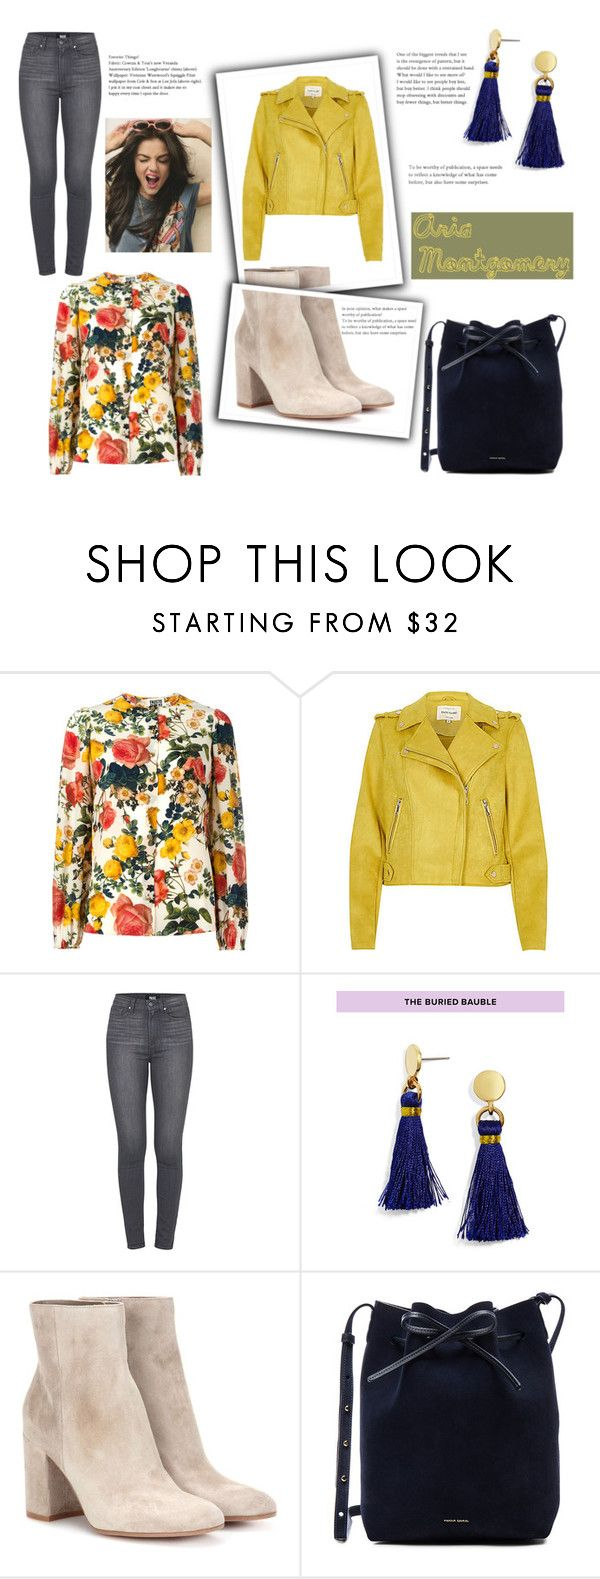 """Aria Montgomery"" by spencer-hastings-5 ❤ liked on Polyvore featuring FAUSTO PUGLISI, Paige Denim, BaubleBar, Gianvito Rossi and Mansur Gavriel"